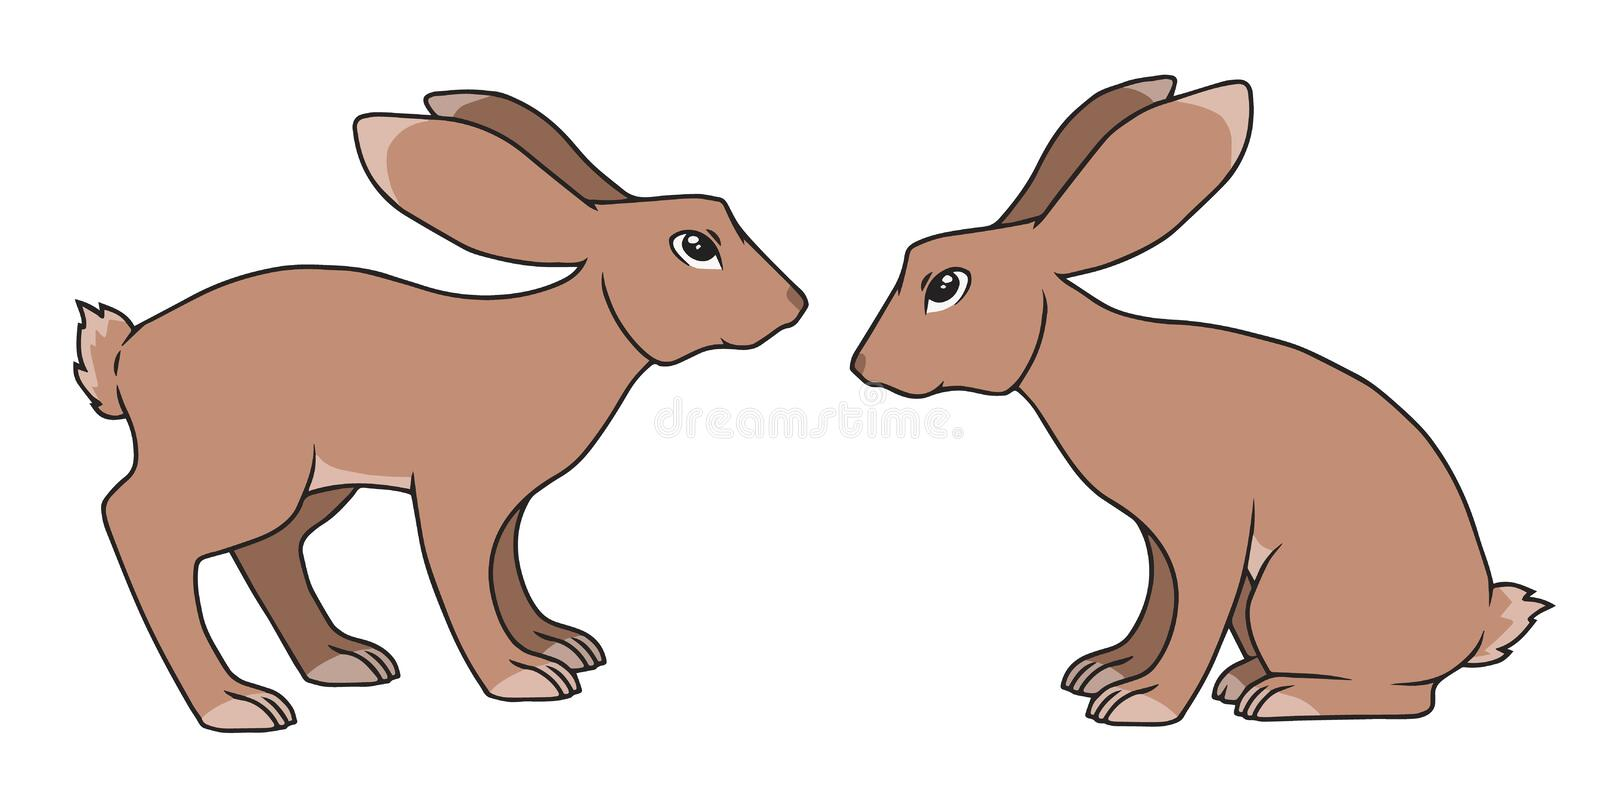 Two simple vector cartoon style standing and sitting brown rabbit drawings stock illustration